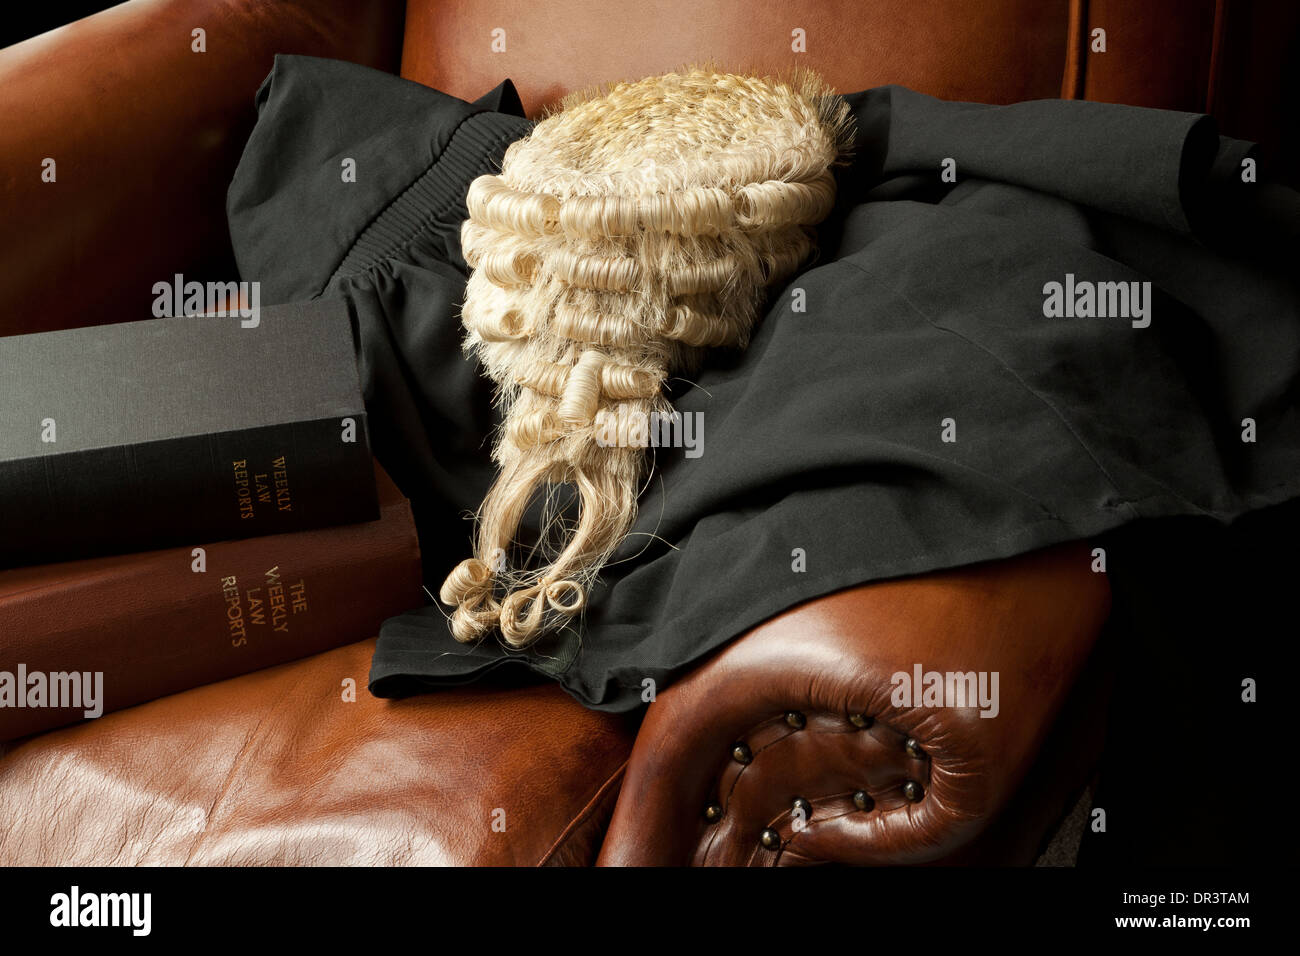 A Barrister s Wig and Gown Stock Photo  65853164 - Alamy bf58bc32eeb1